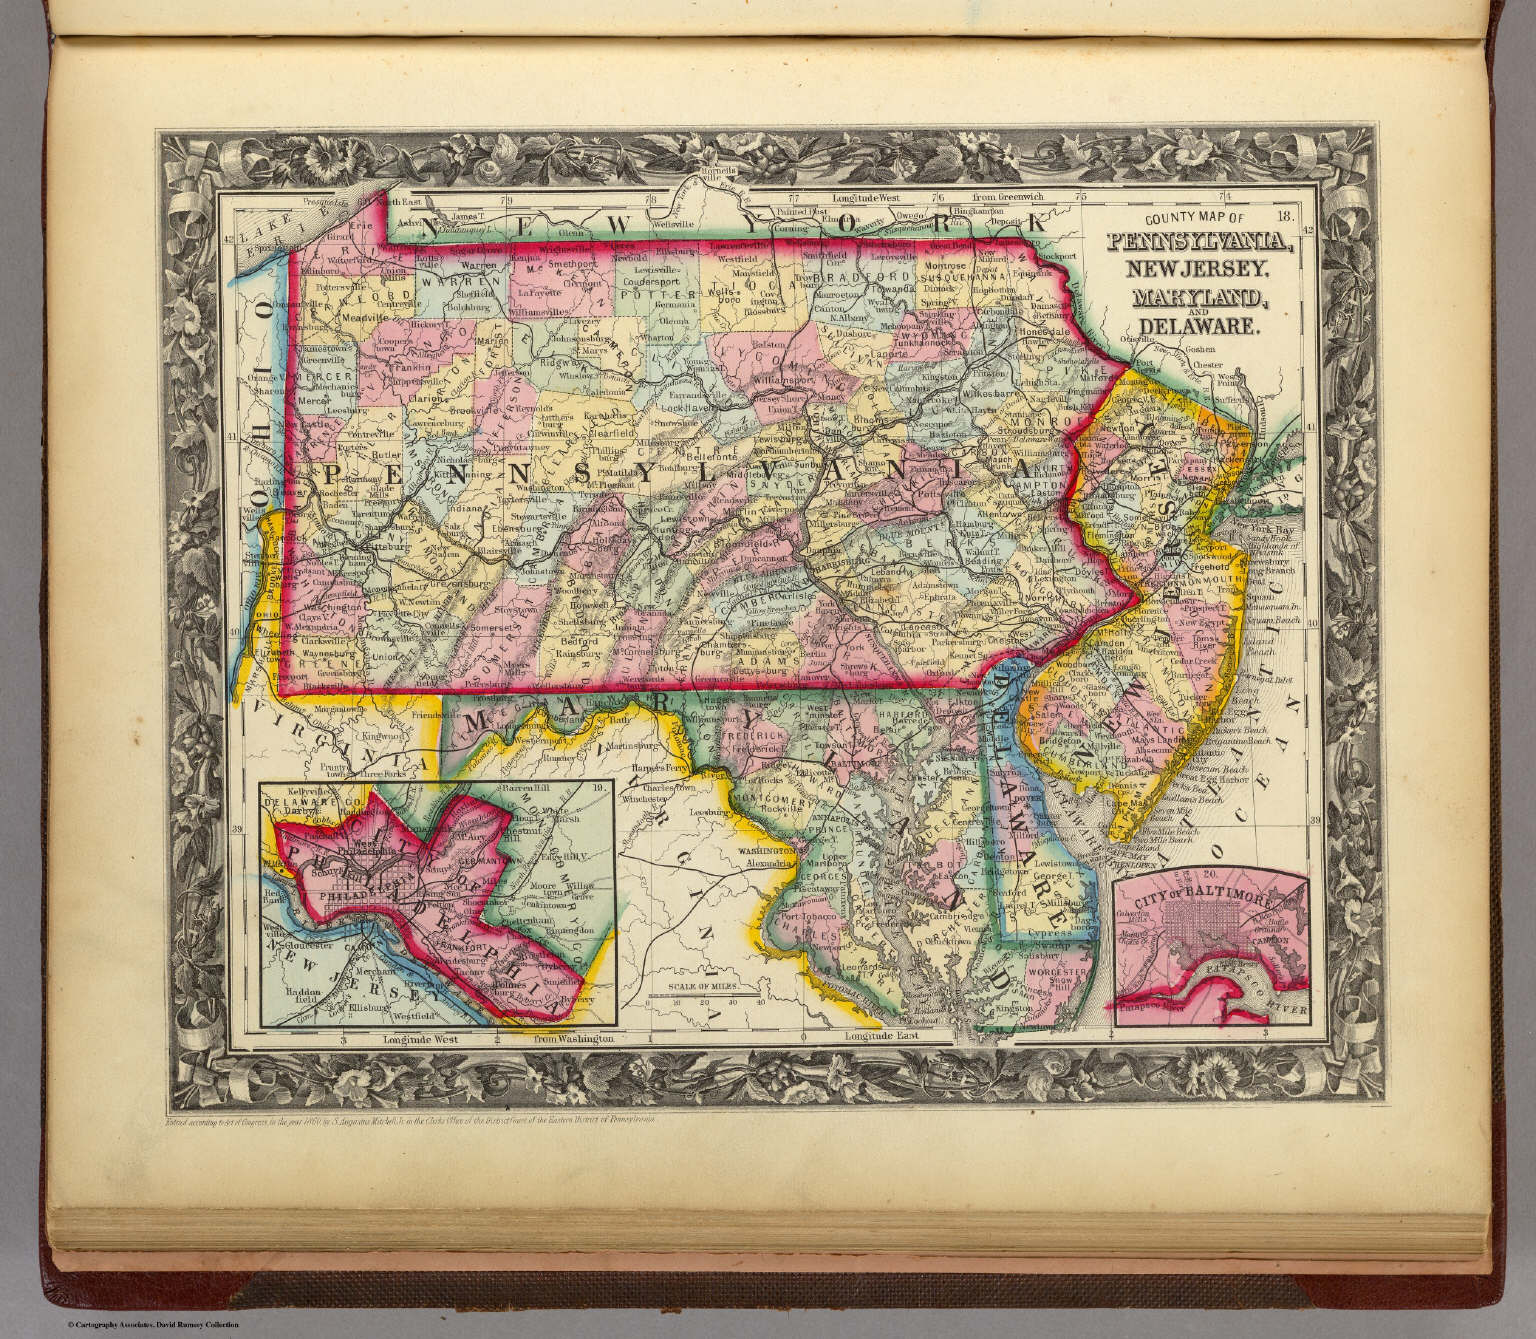 County Map Of Pennsylvania, New Jersey, Maryland, And Delaware ...